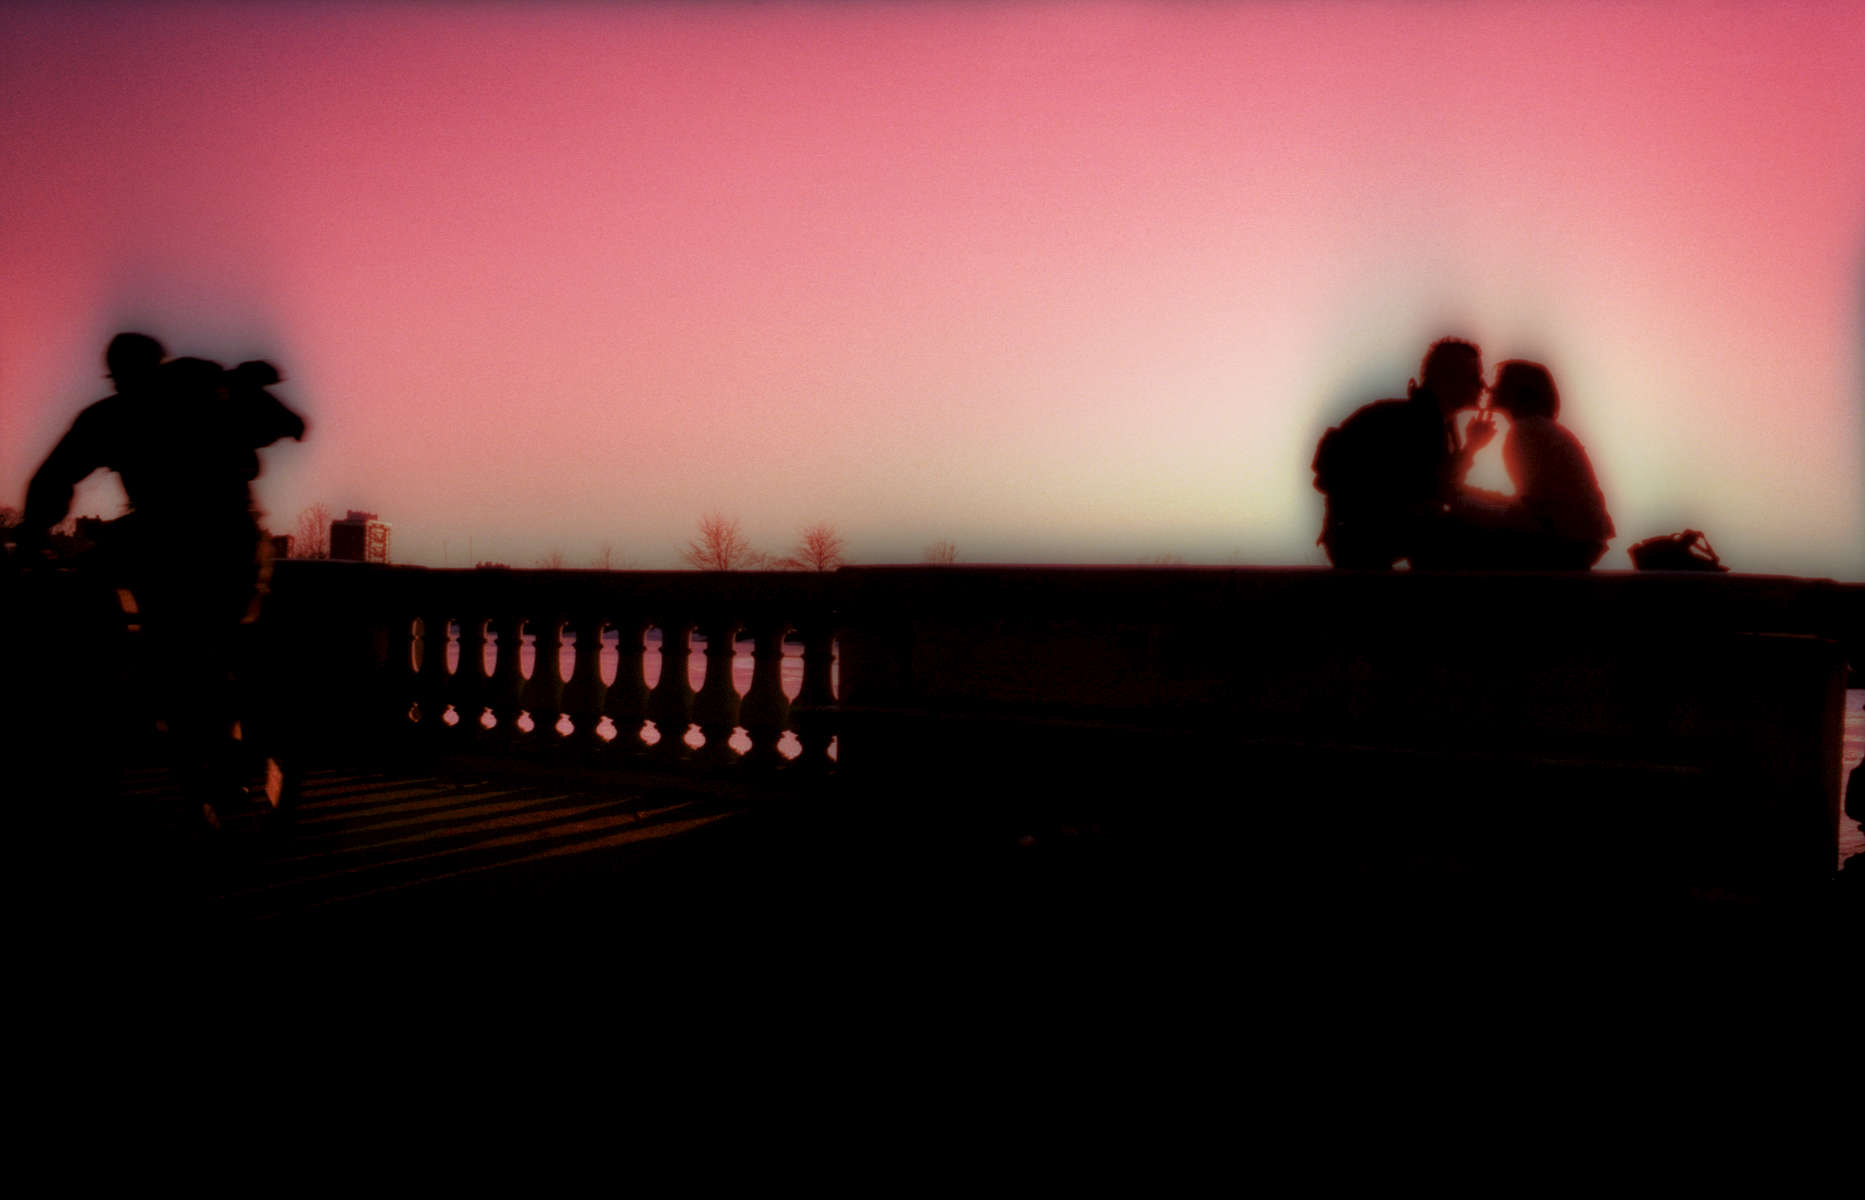 3/22/2005 -- Boston, MA -- The Esplanade -- Lovers kiss at sunset on the Esplanade in Boston, MA on Tuesday evening, March 22, 2005. For Magazine back cover. Photo by Dina Rudick, Boston Globe Staff. DO NOT ALTER THE COLORS OF THIS PHOTOGRAPH IN PRODUCTION!! IT IS SHOT ON CHROME FILM AND WAS CROSS-PROCESSED...THEREFORE THE INTENSE COLOR SHIFT AND SATURATION.